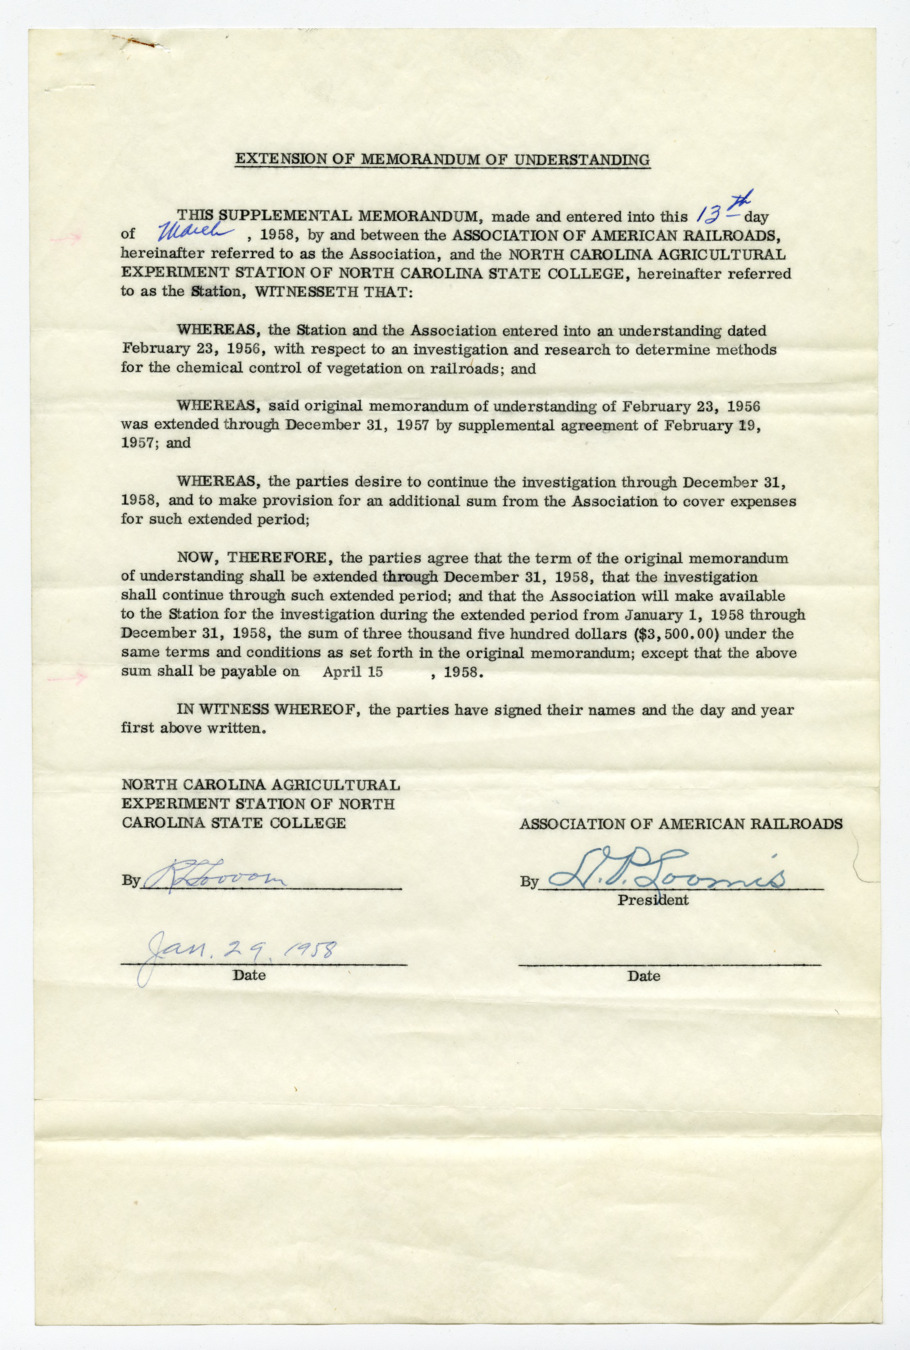 Agreement between Association of American Railroads and the Agricultural Experiment Station, 1957-1958